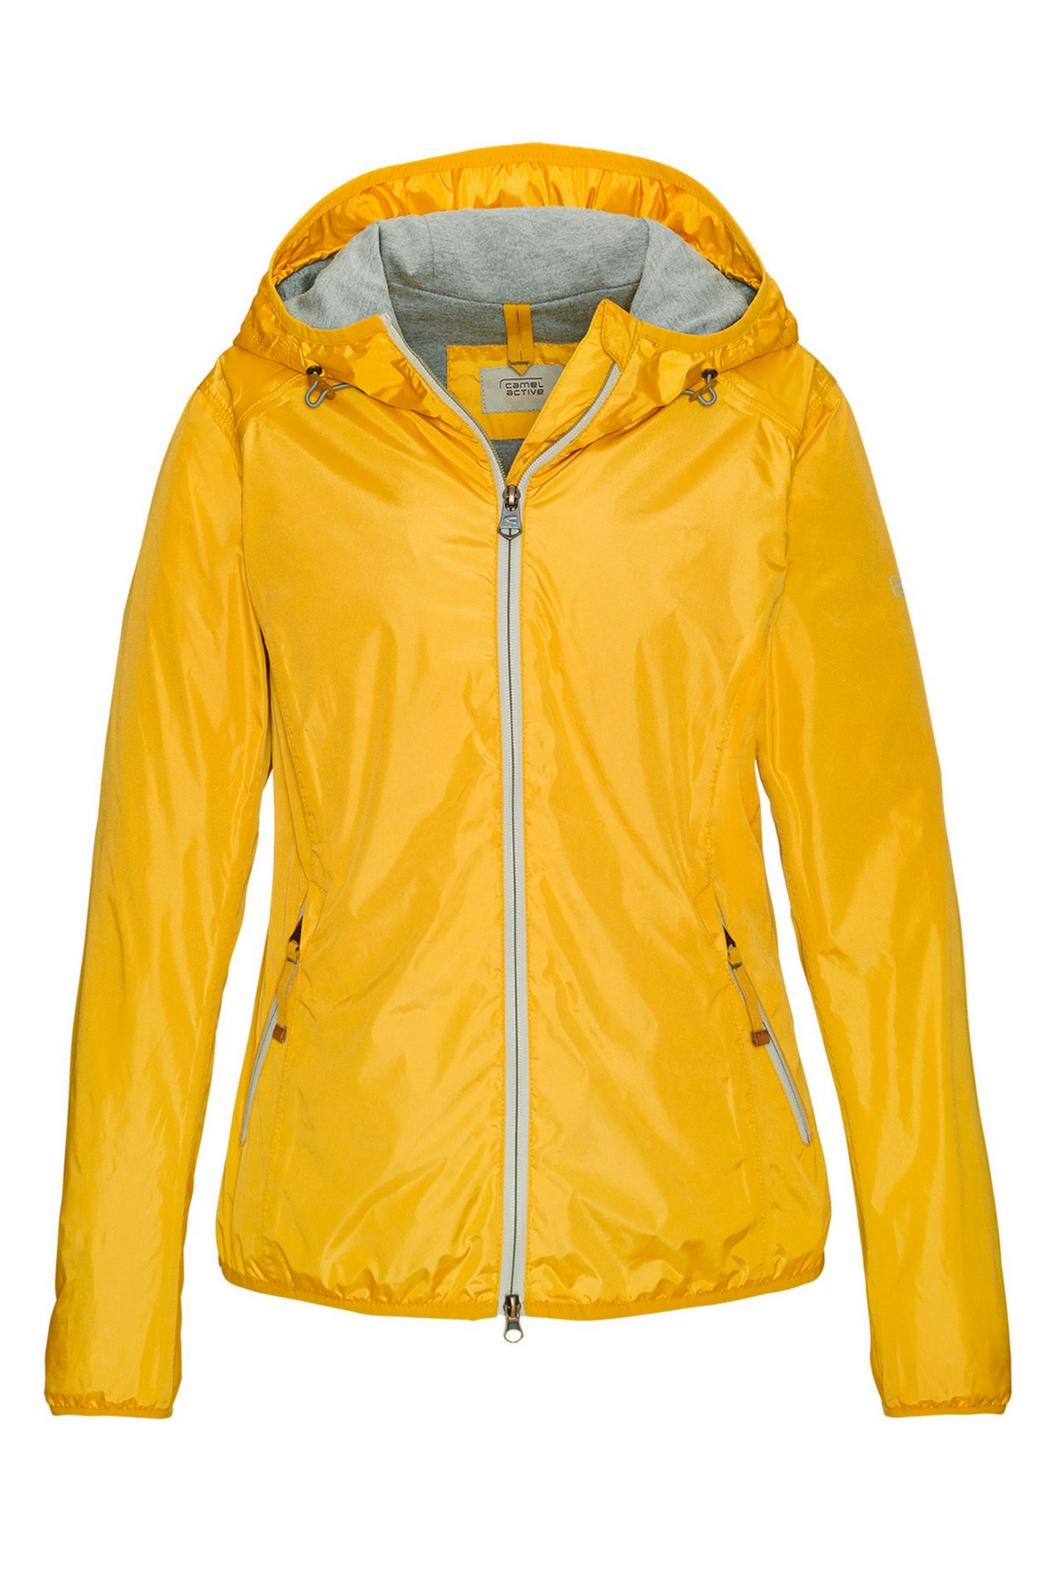 Camel Active Weatherproof Jacket - Main Image